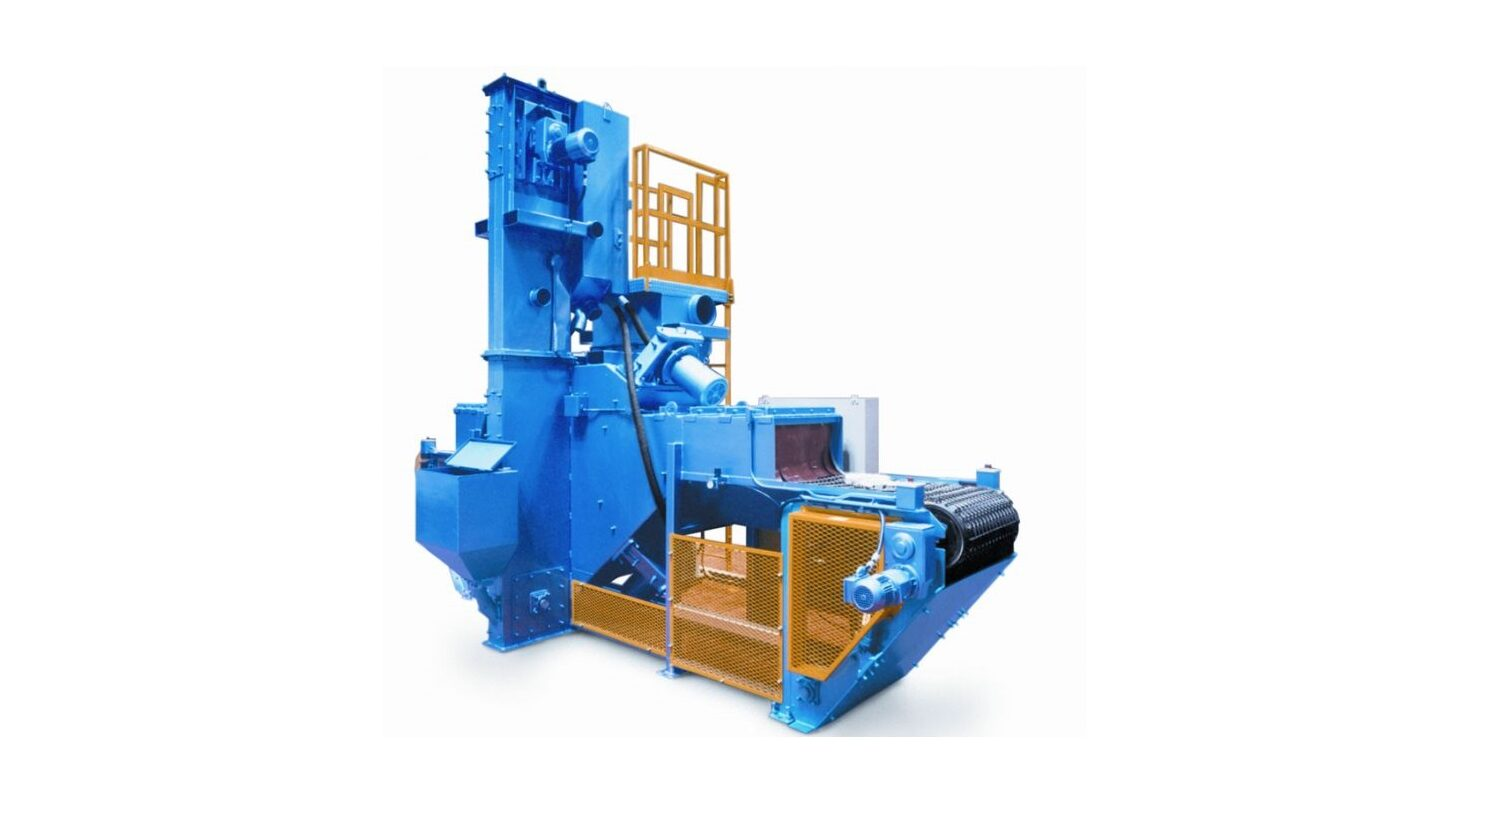 Image is of a blue and yellow piece of wheel blast equipment photographed on a white background.